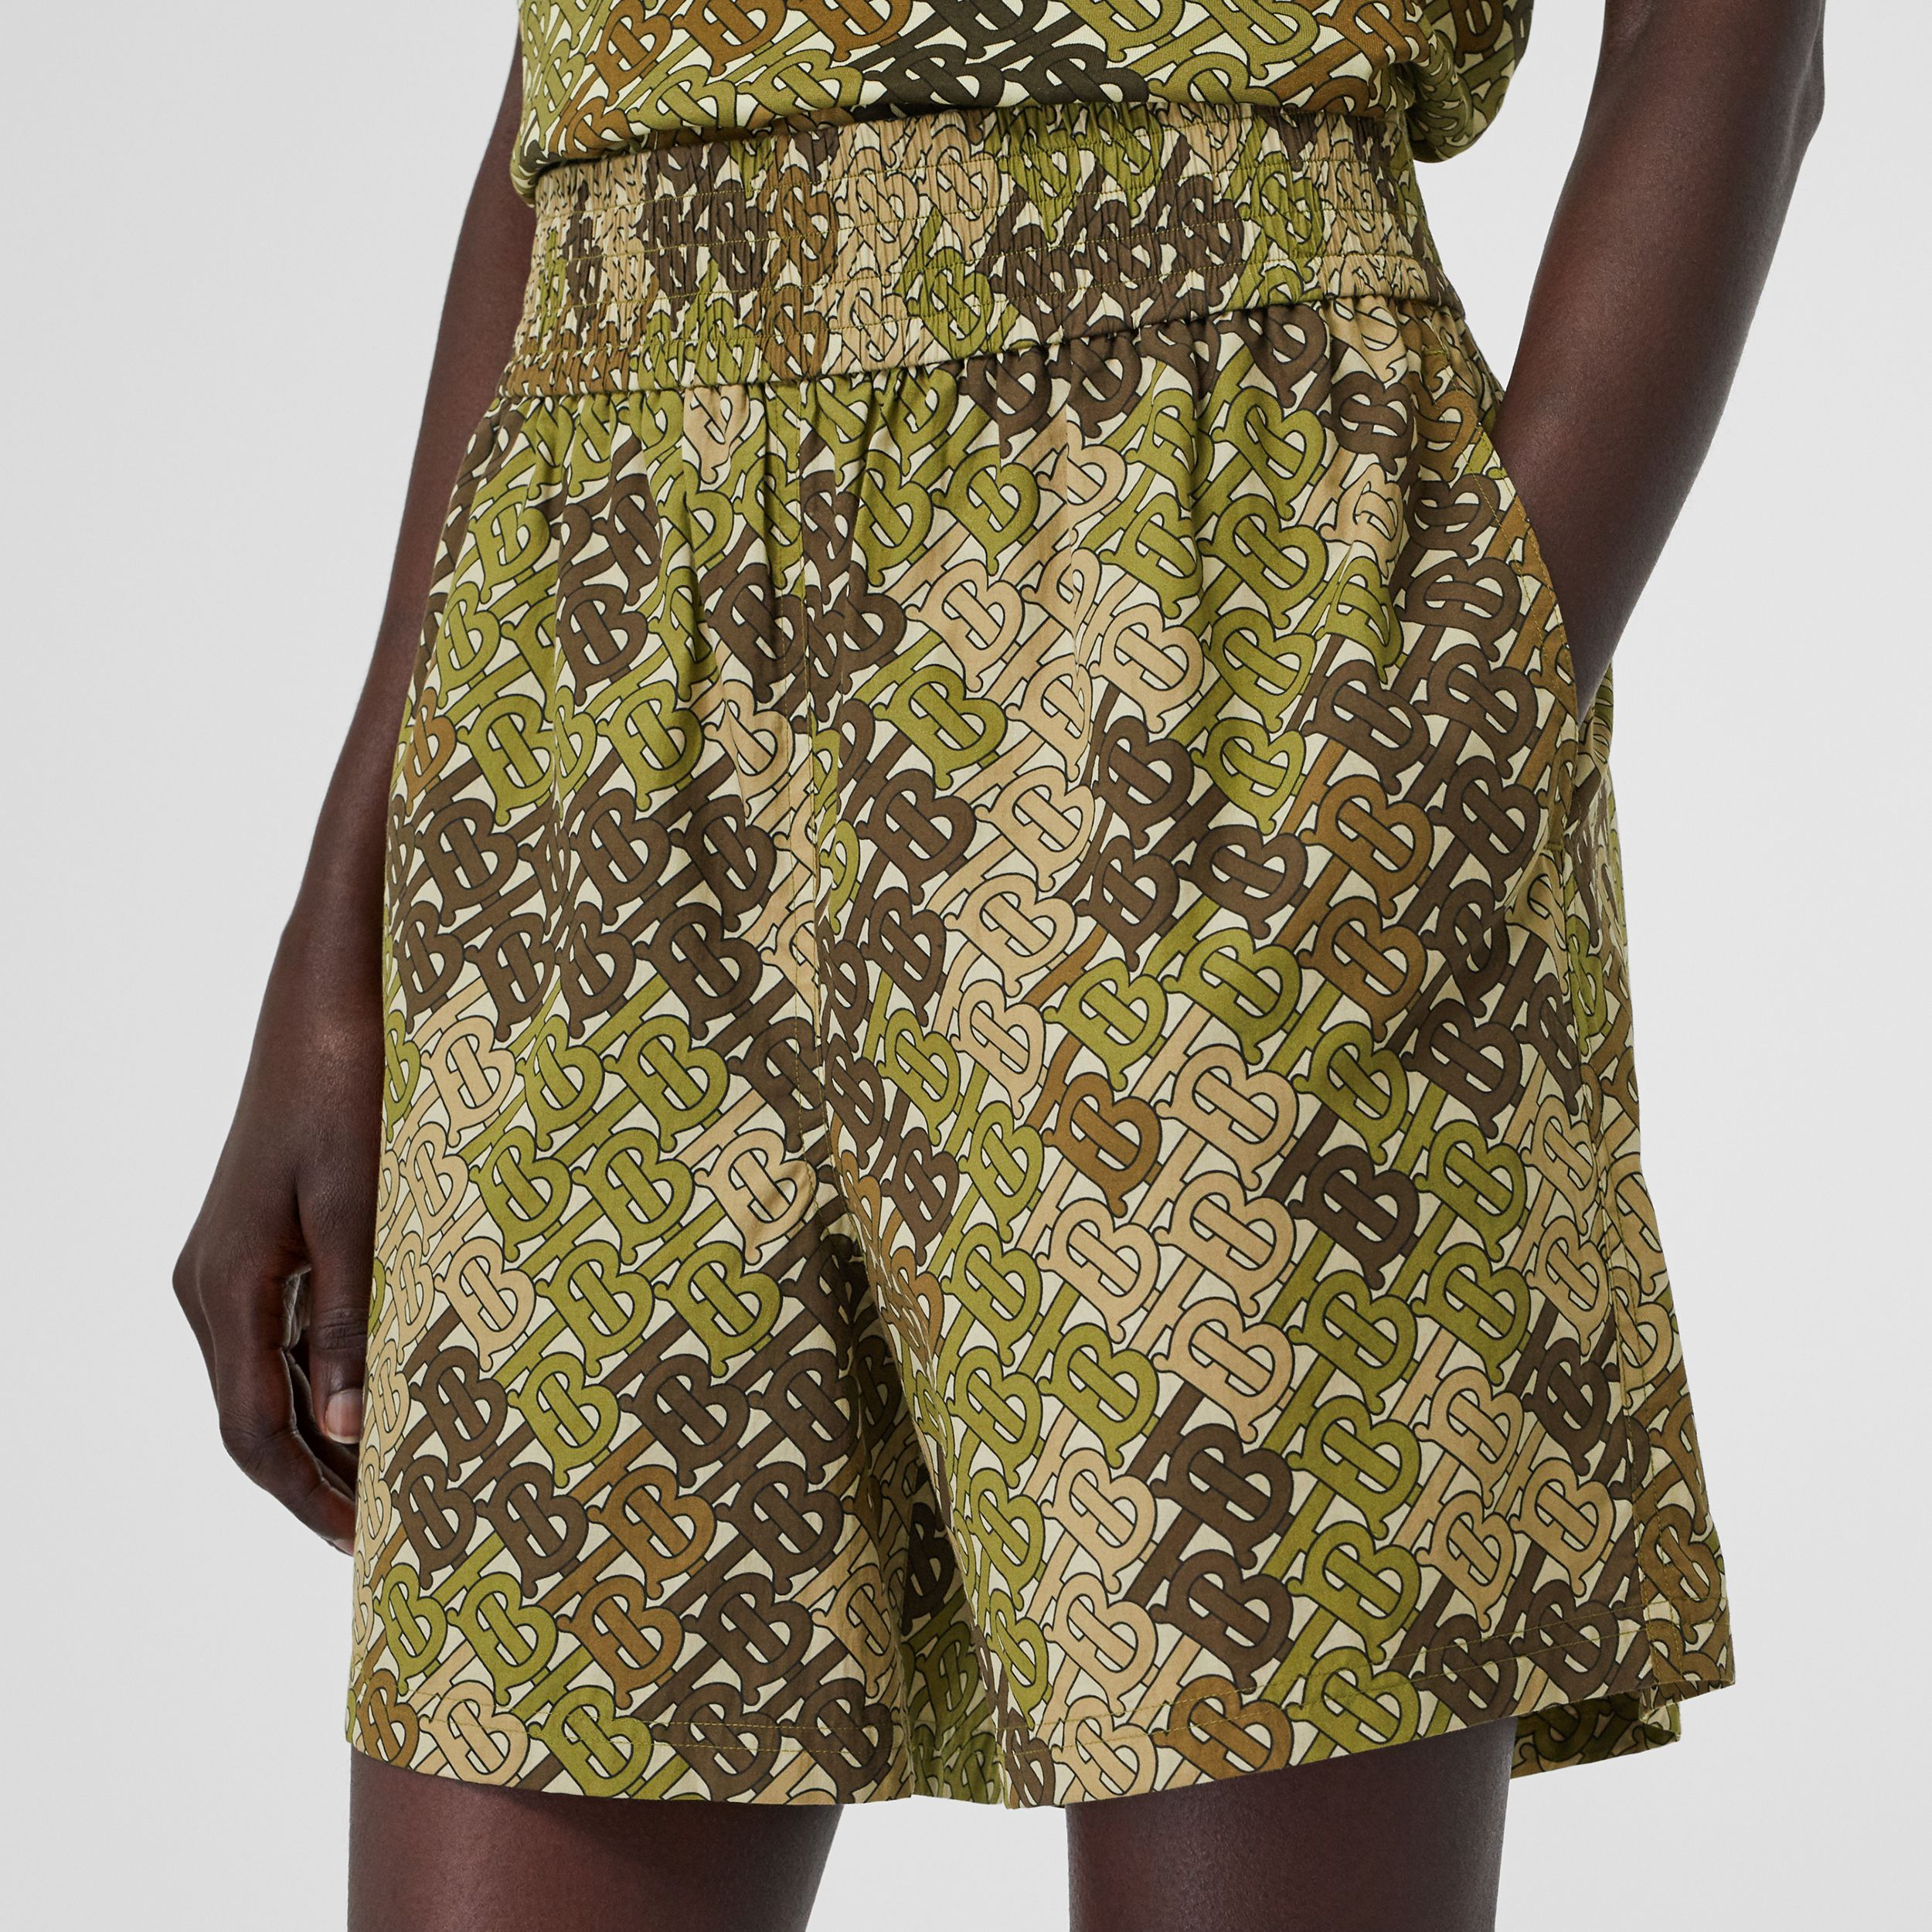 Monogram Print Cotton Poplin Shorts in Khaki Green | Burberry - 2